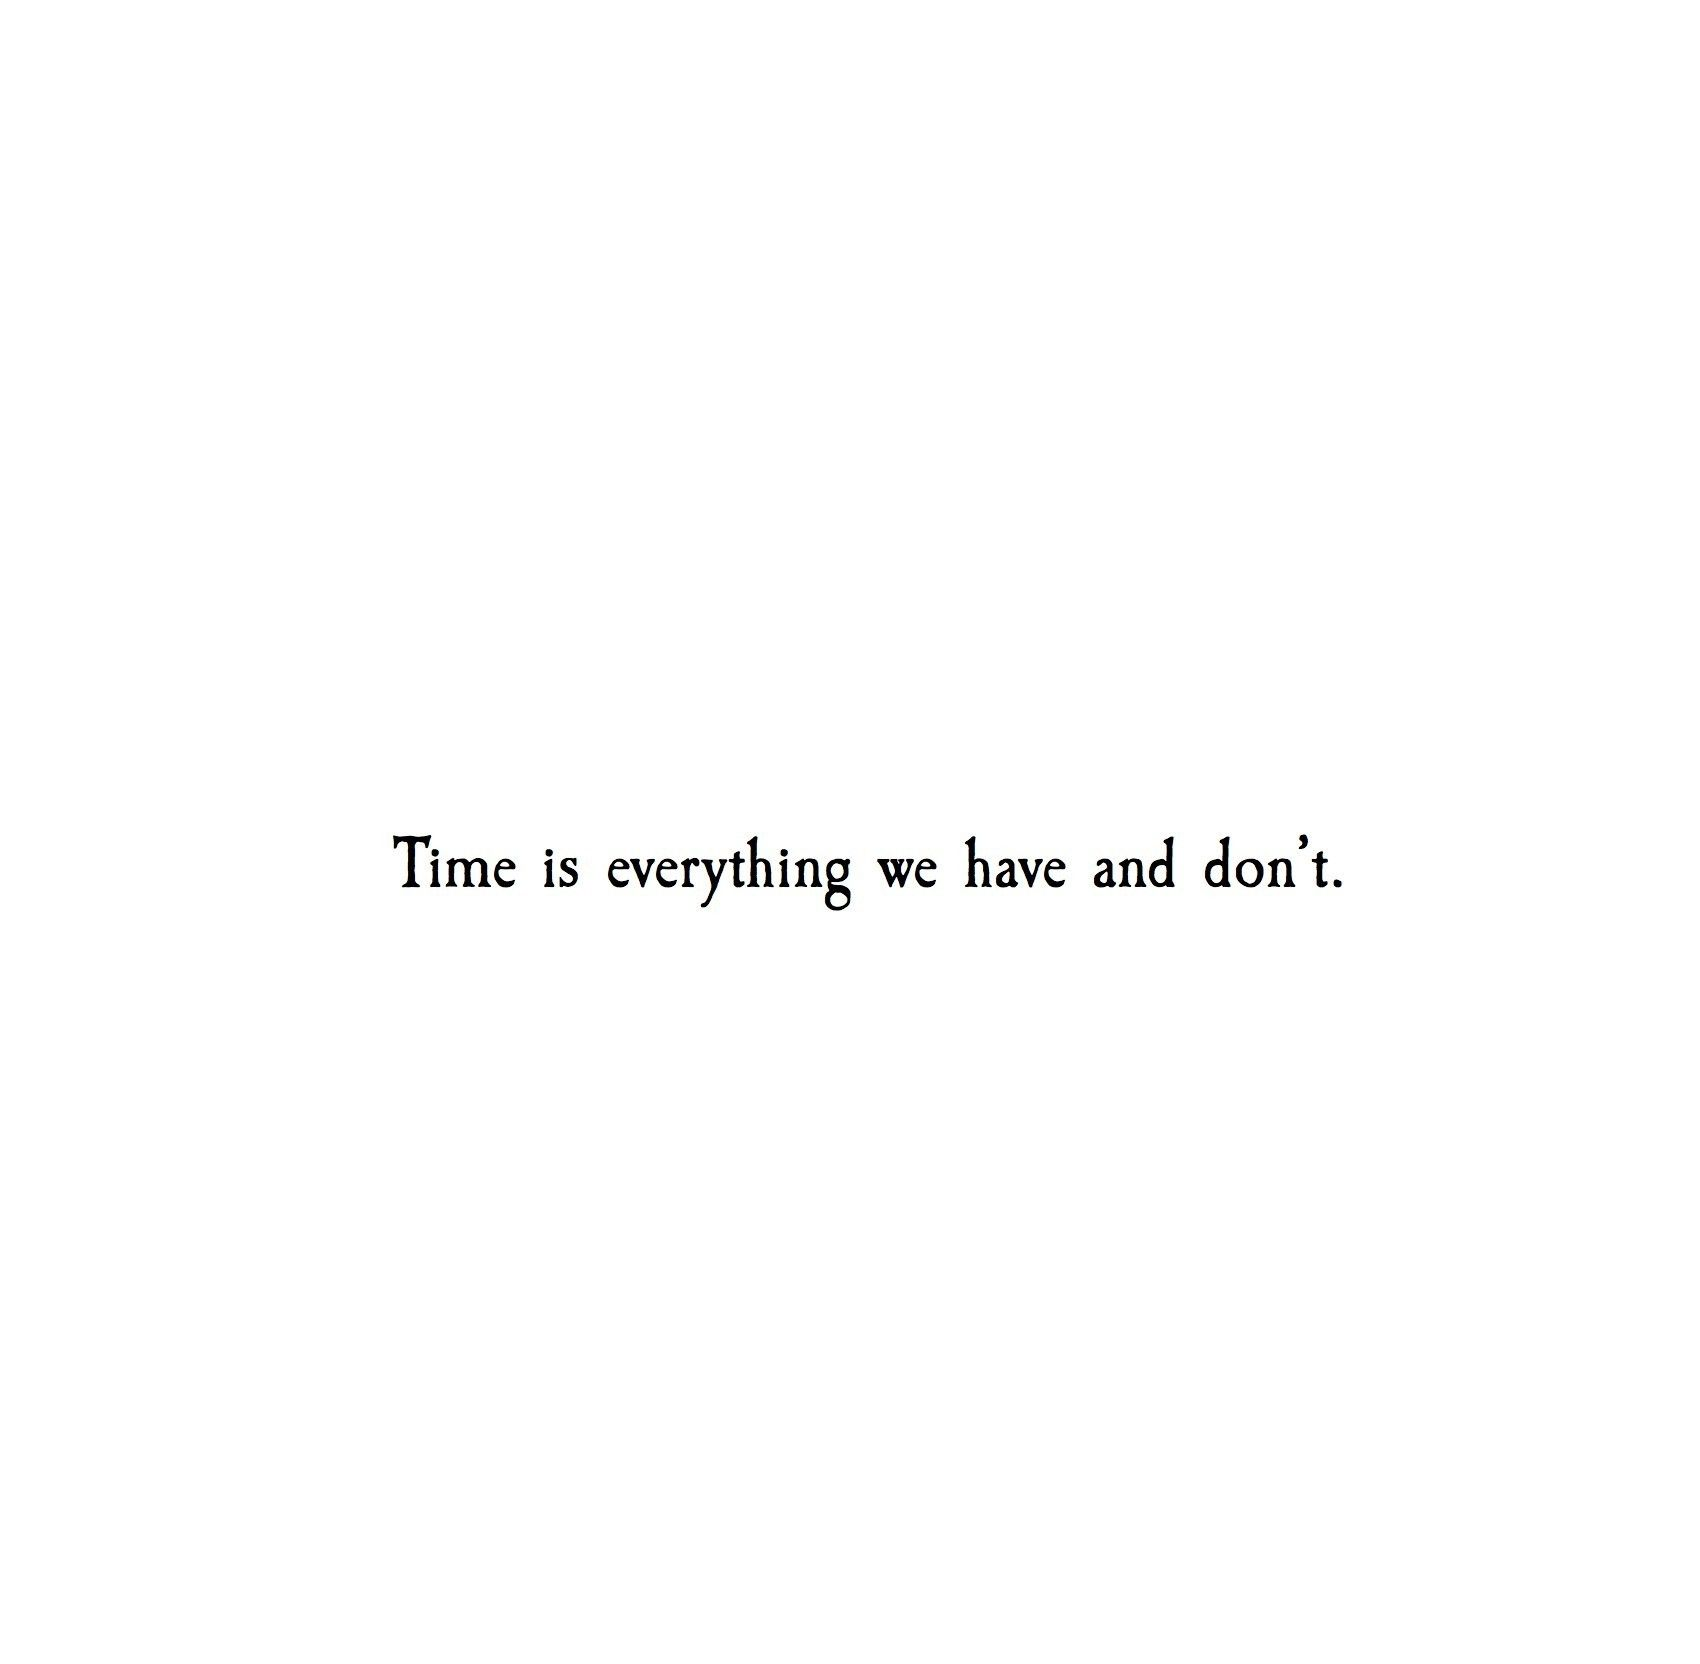 One Line Quotes Tumblr: Time Is All We Have And Don't Deep Life Quote Whah